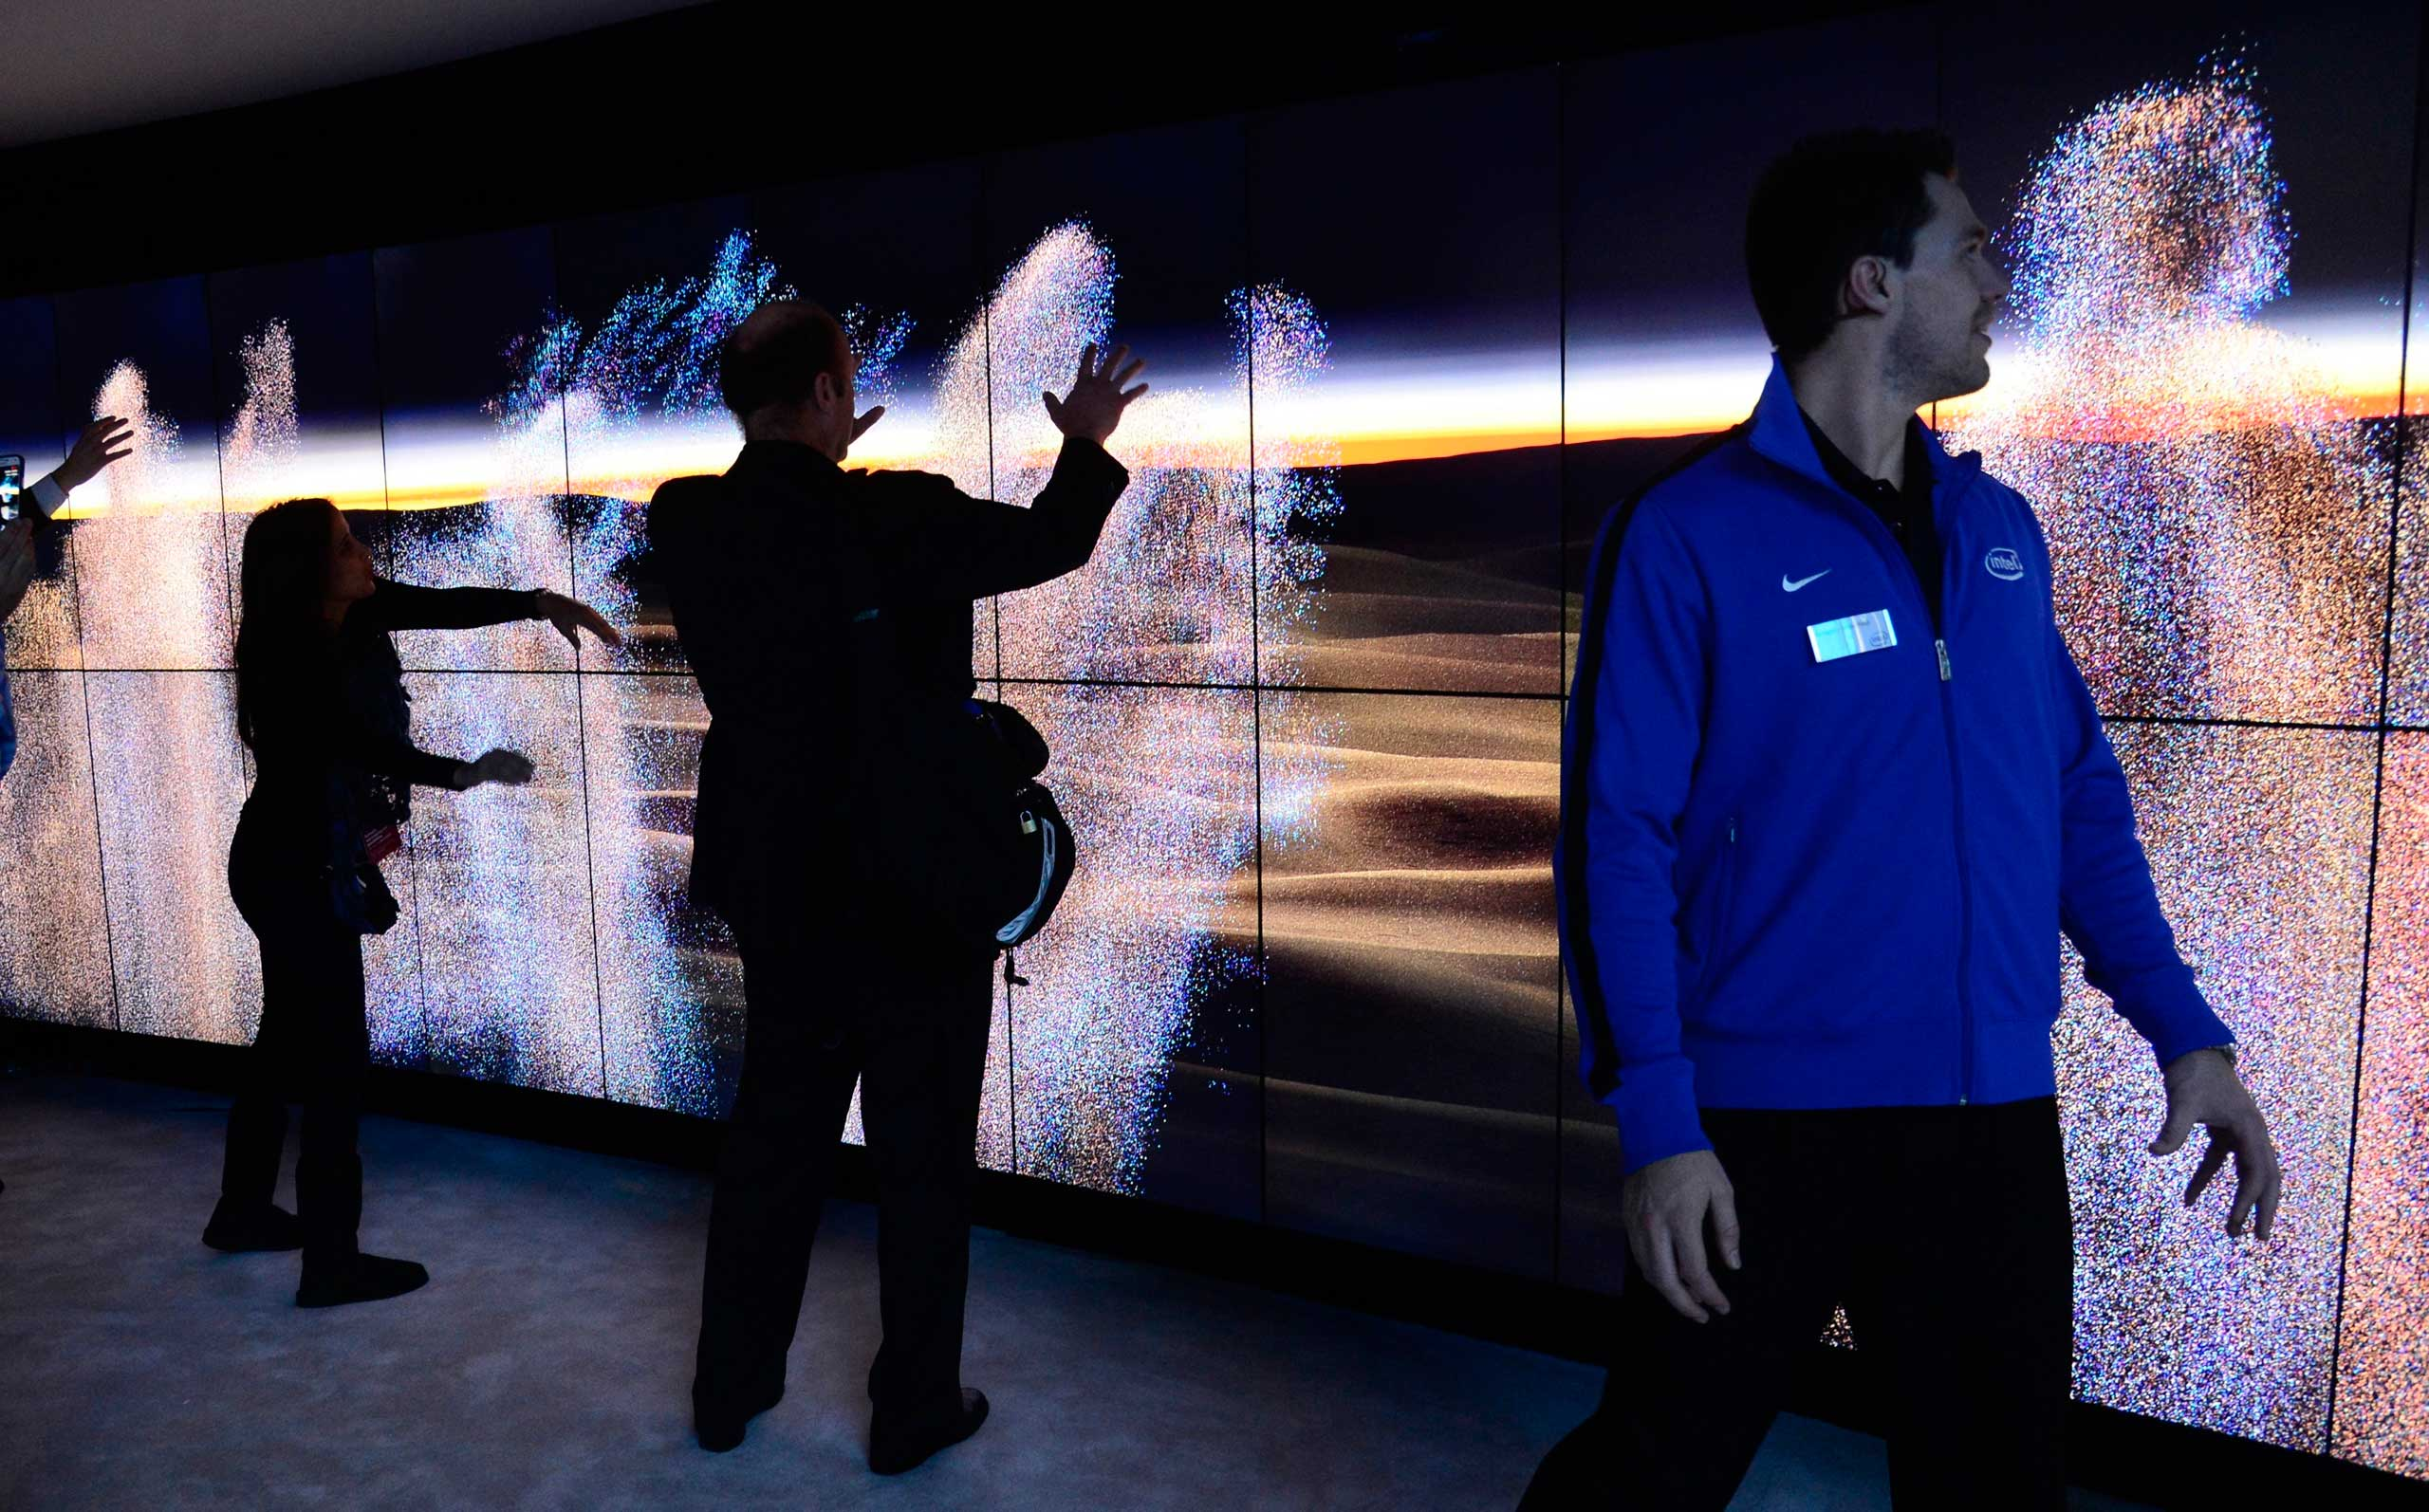 Attendees interact with wity screens that run on Intel's Realsense technology on Jan. 6, 2015.